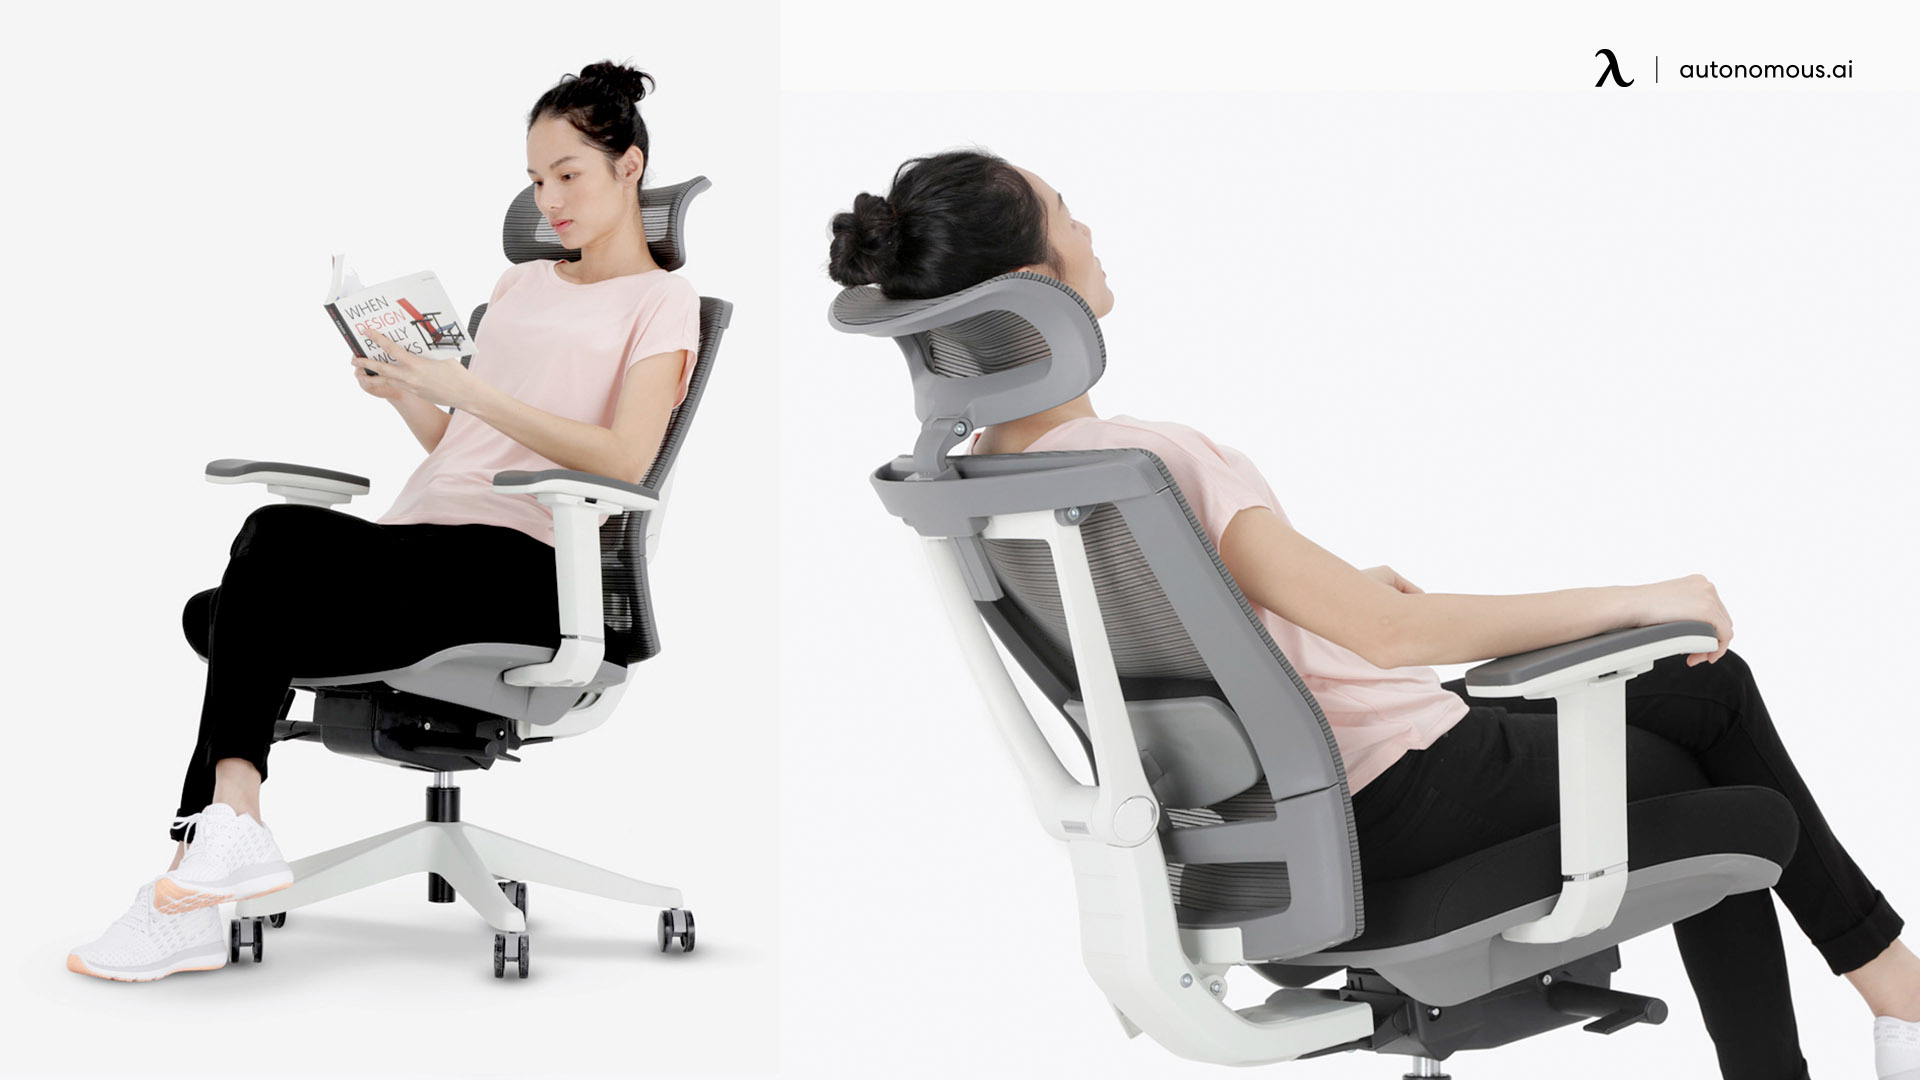 Lumbar Support is Key